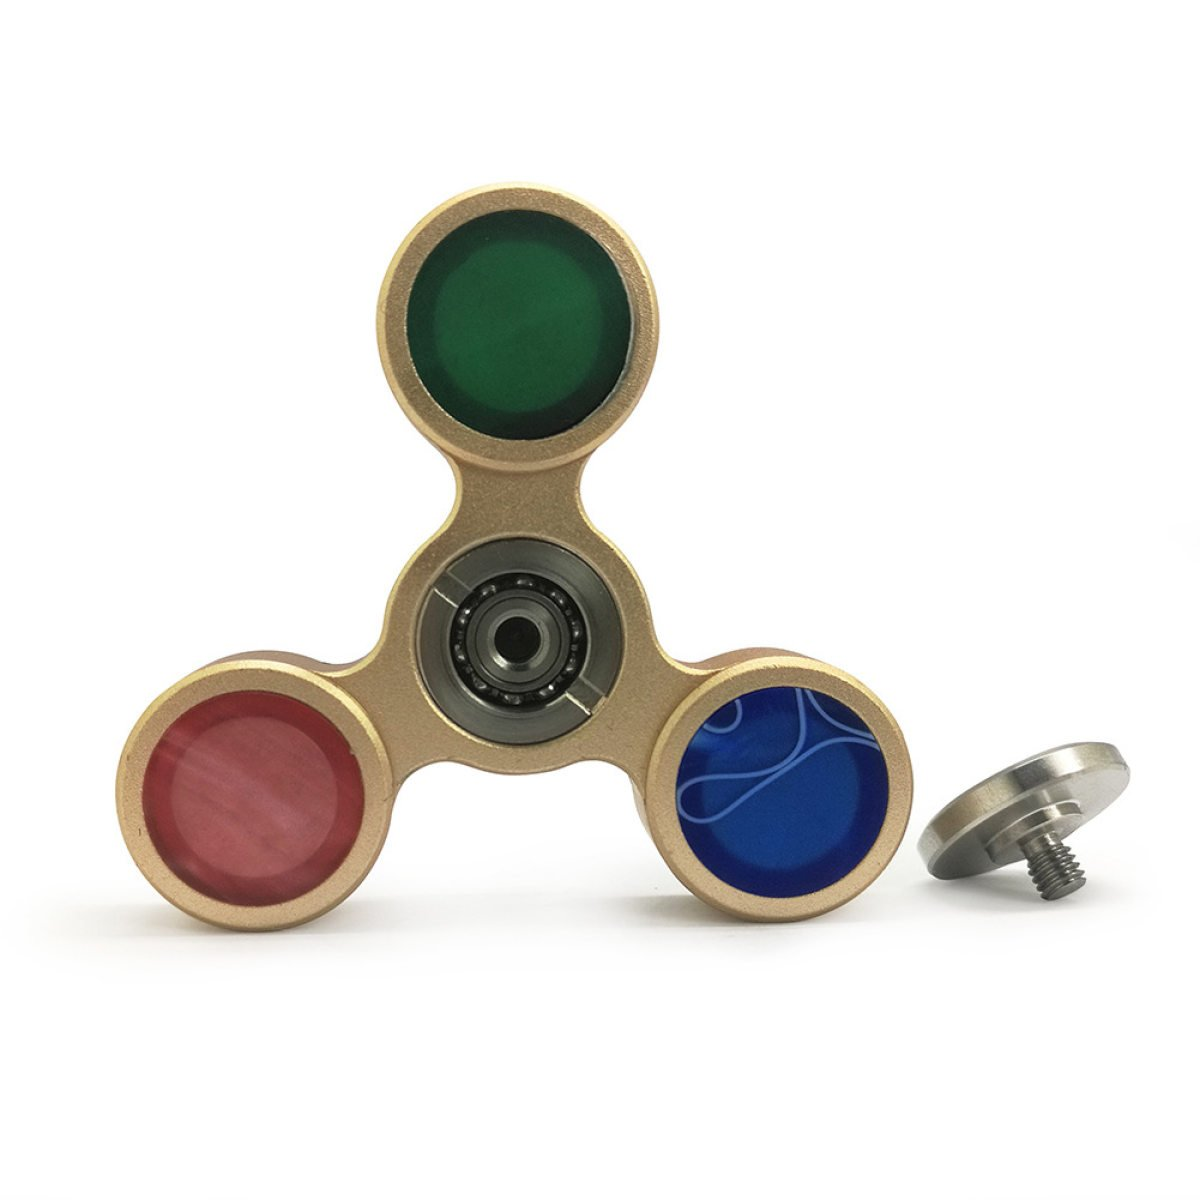 YIHANG @ Fidget Spinner Fingerspitze Gyro Finger Schraube Dreieck High Speed ​​Focus Super Durable Dekompression Spielzeug